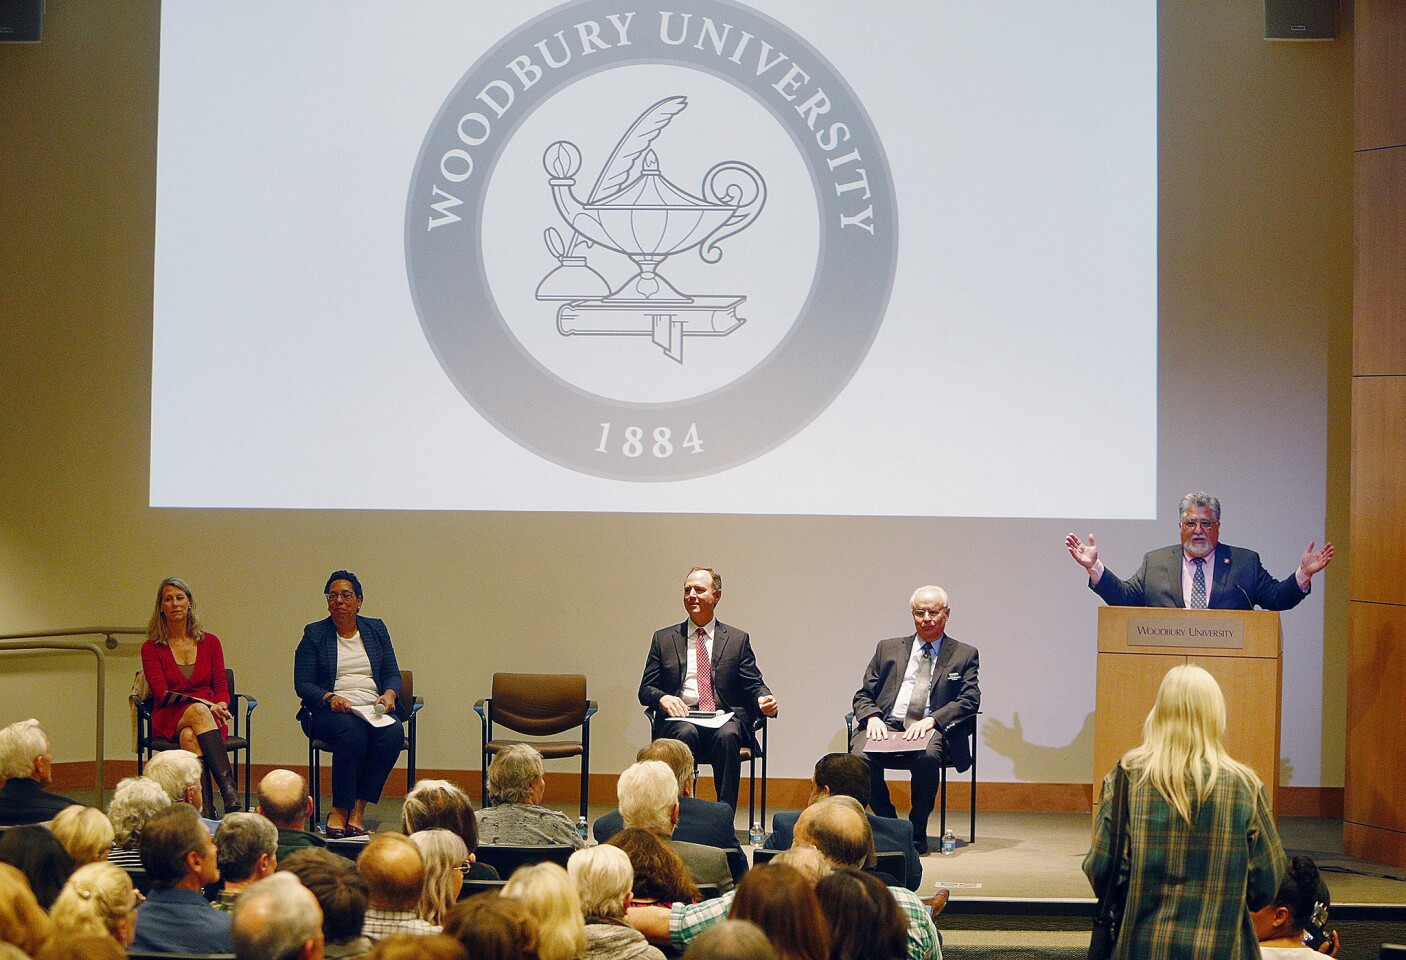 Photo Gallery: U.S. Senator Adam Schiff and California State Senator Anthony Portantino on gun violence panel at Woodbury University